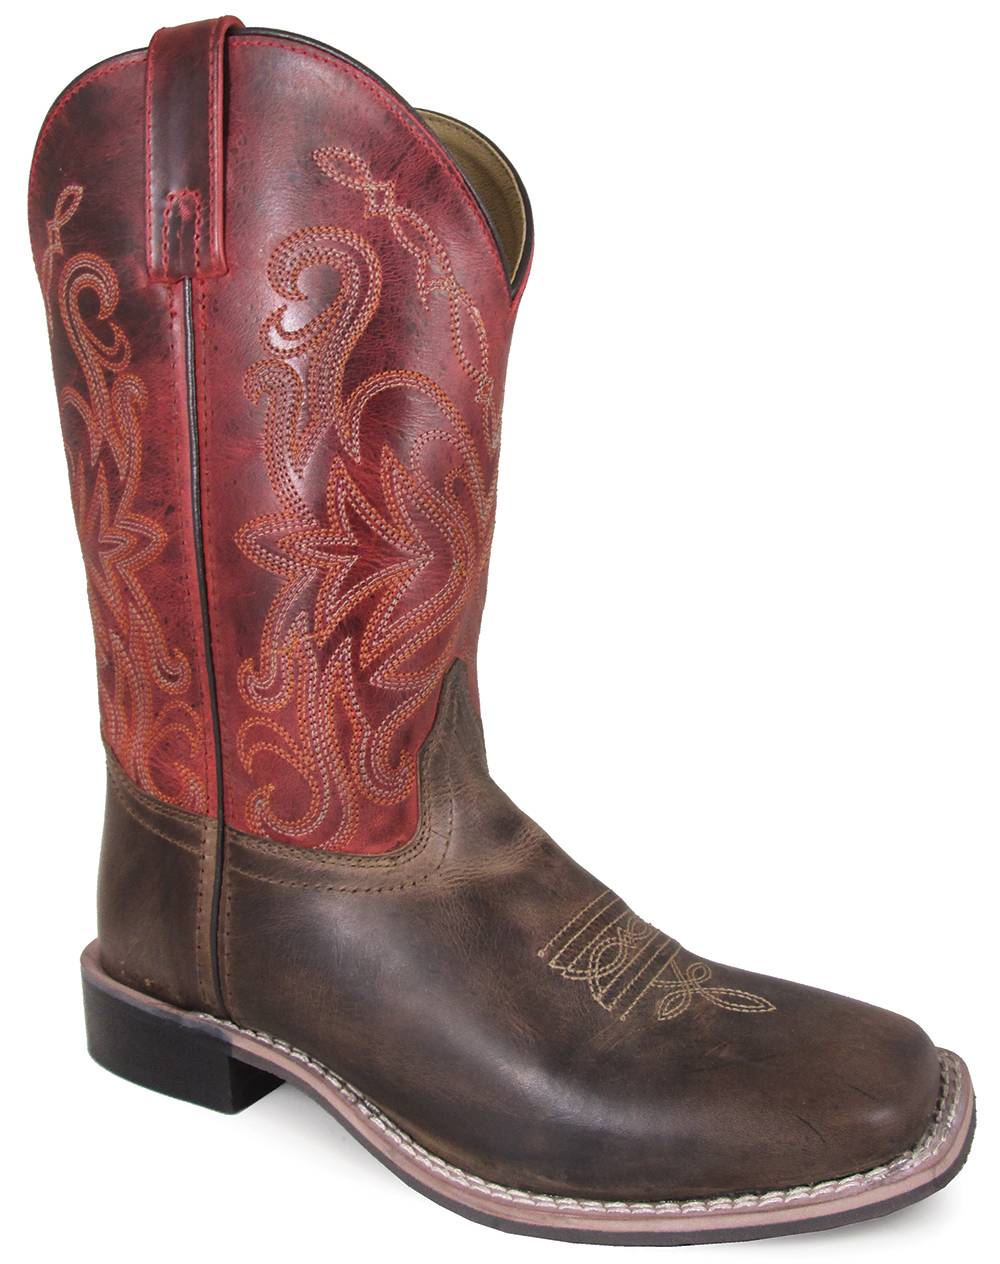 Smoky Mountain Delta 10-inch Leather Square Toe Boot - Brown/Red Crackle